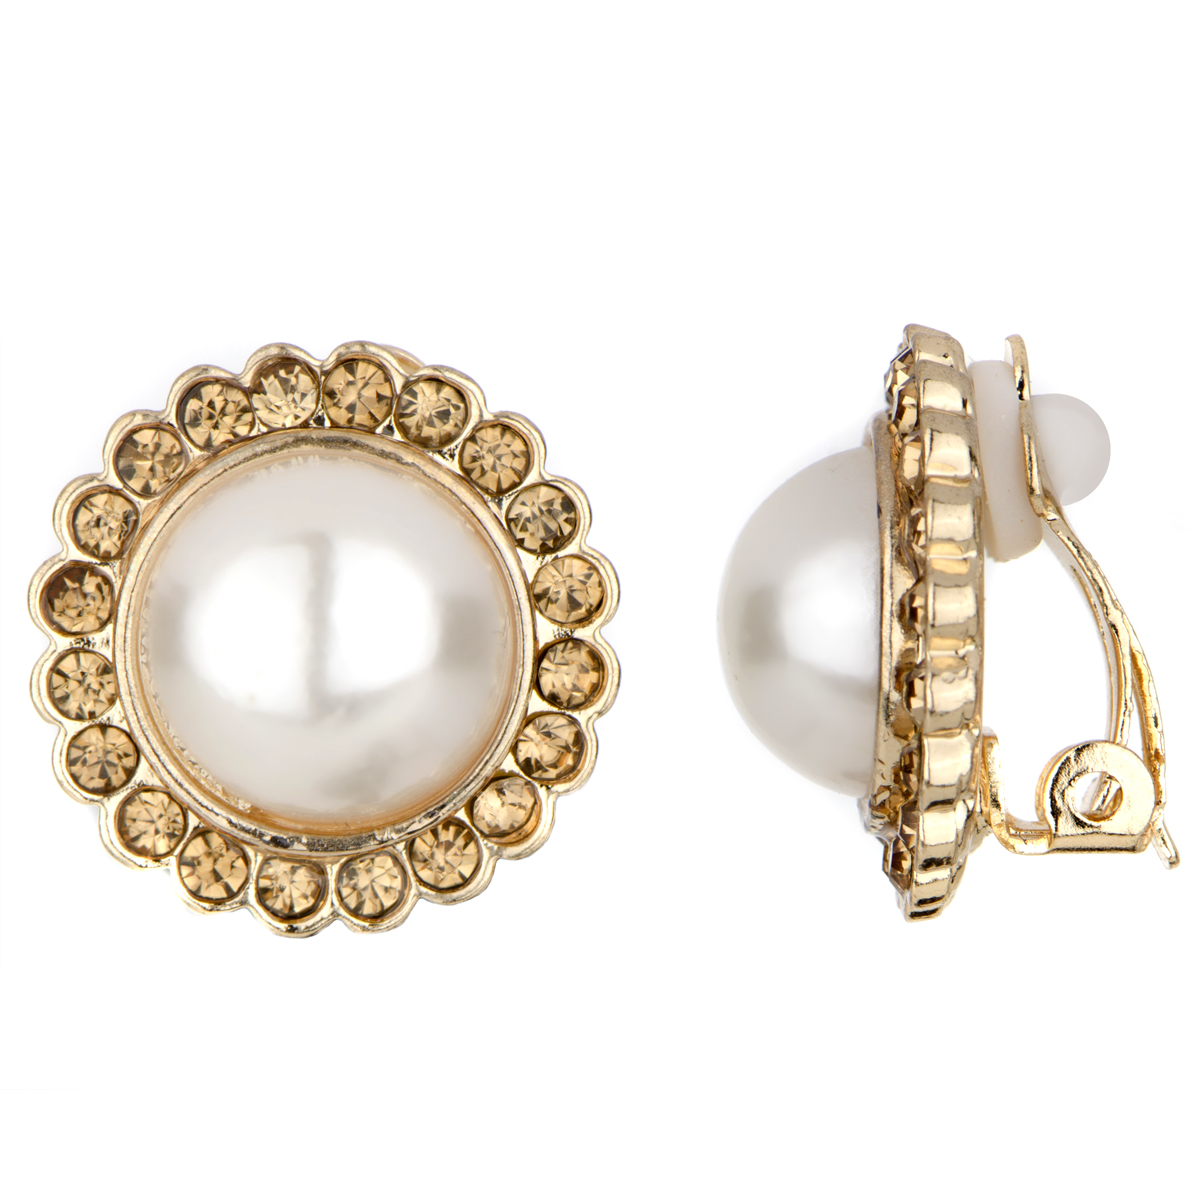 Shop for Women's Clip On Earrings at report2day.ml Eligible for free shipping and free returns.